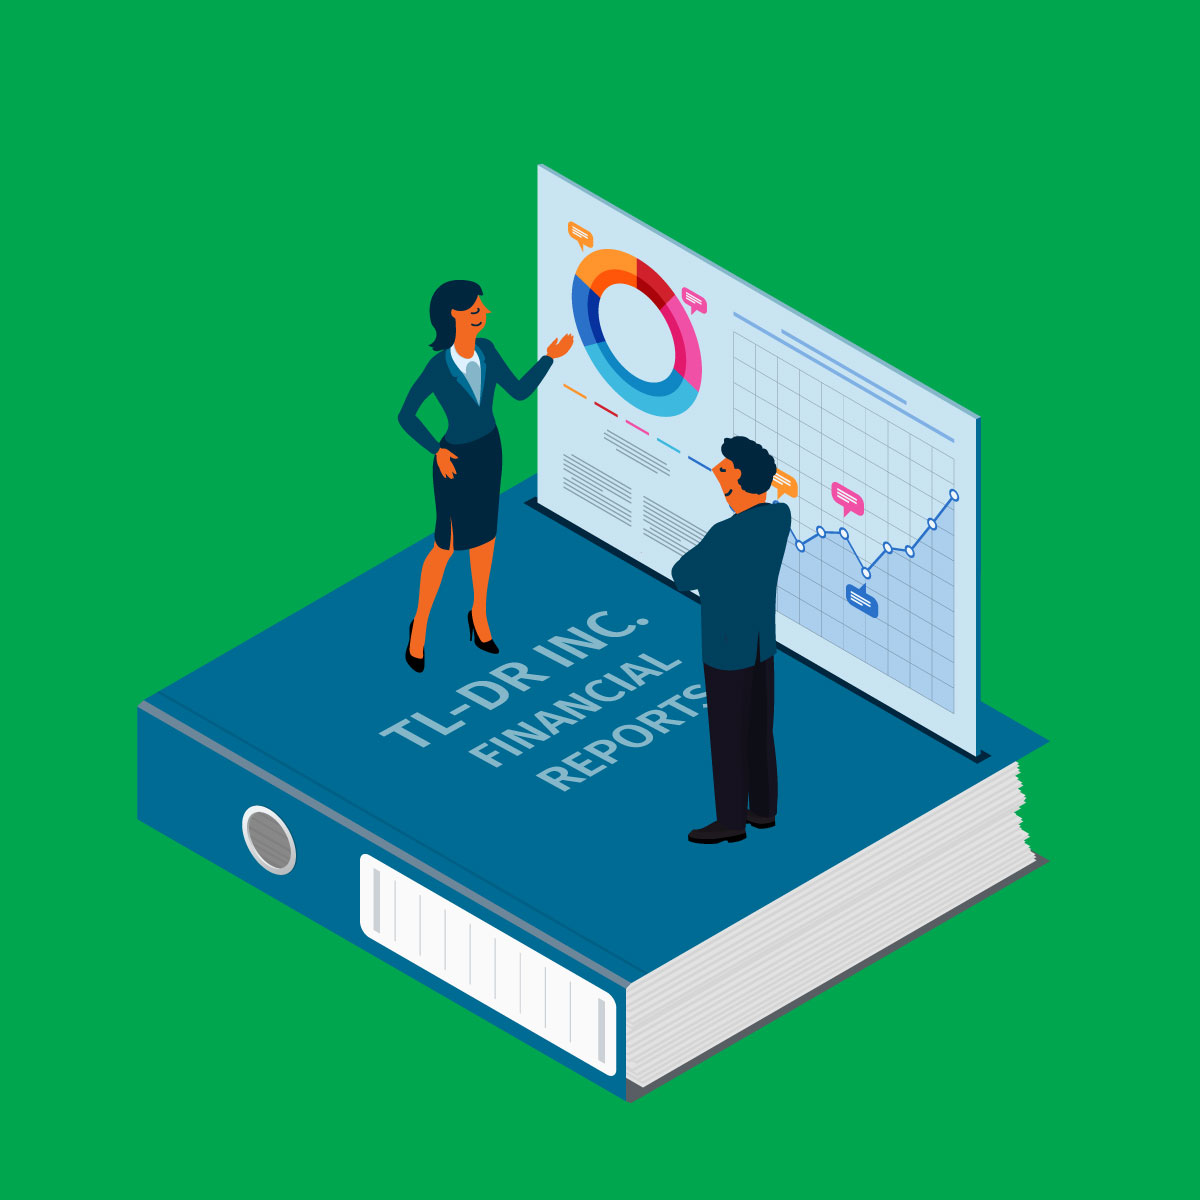 Standard financial statements or quick and easy dashboards?